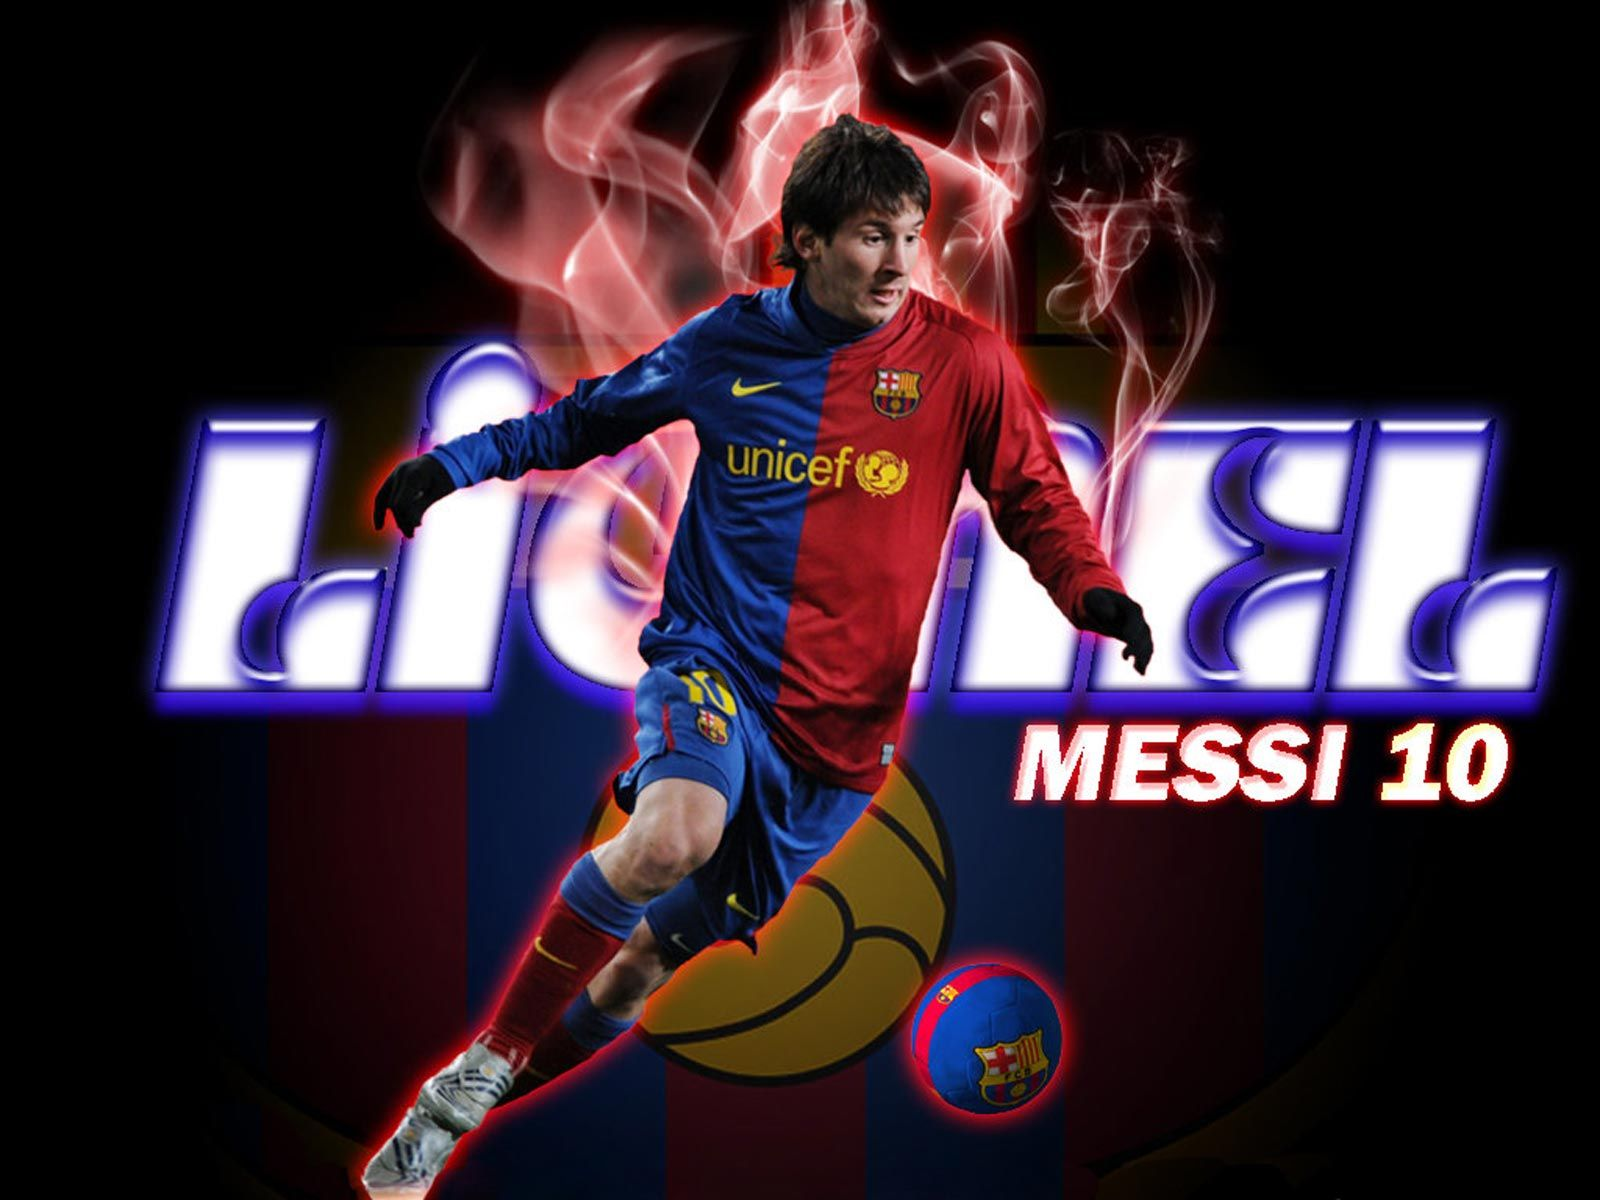 Lionel Messi The Best Player FC Barcelona Football Wallpaper HD